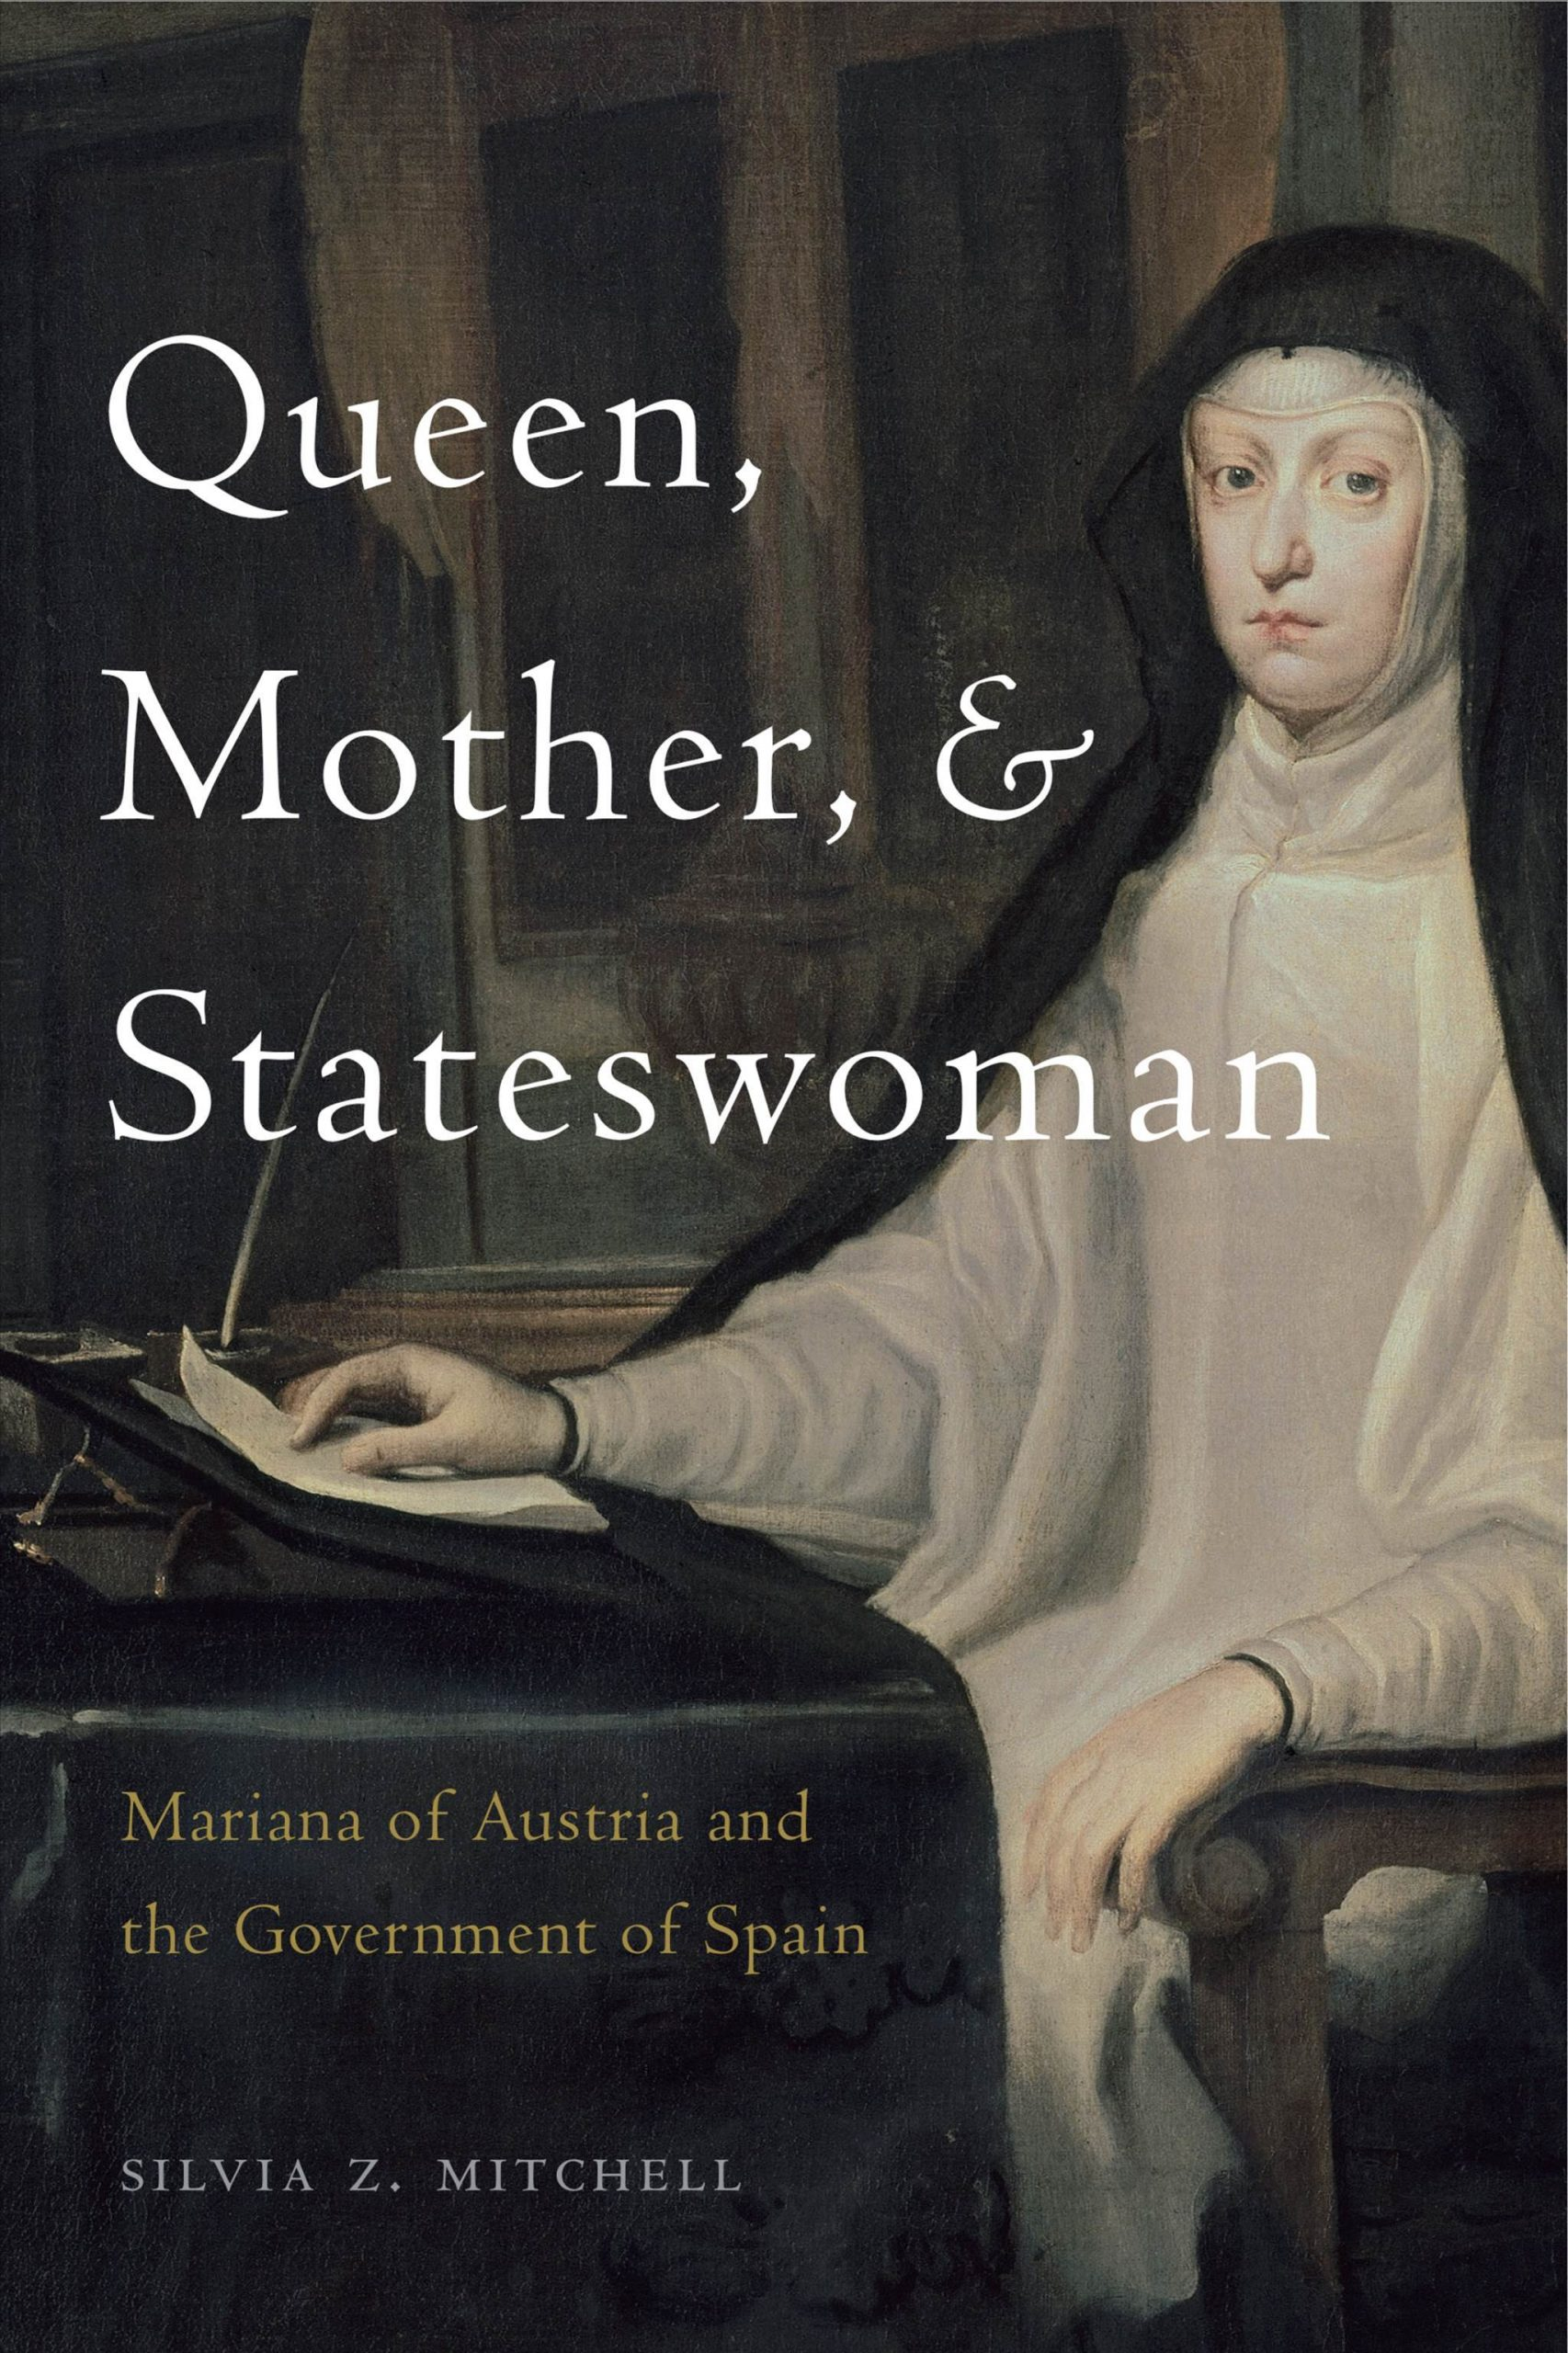 Silvia Mitchel volume cover: Queen, Mother, Stateswoman